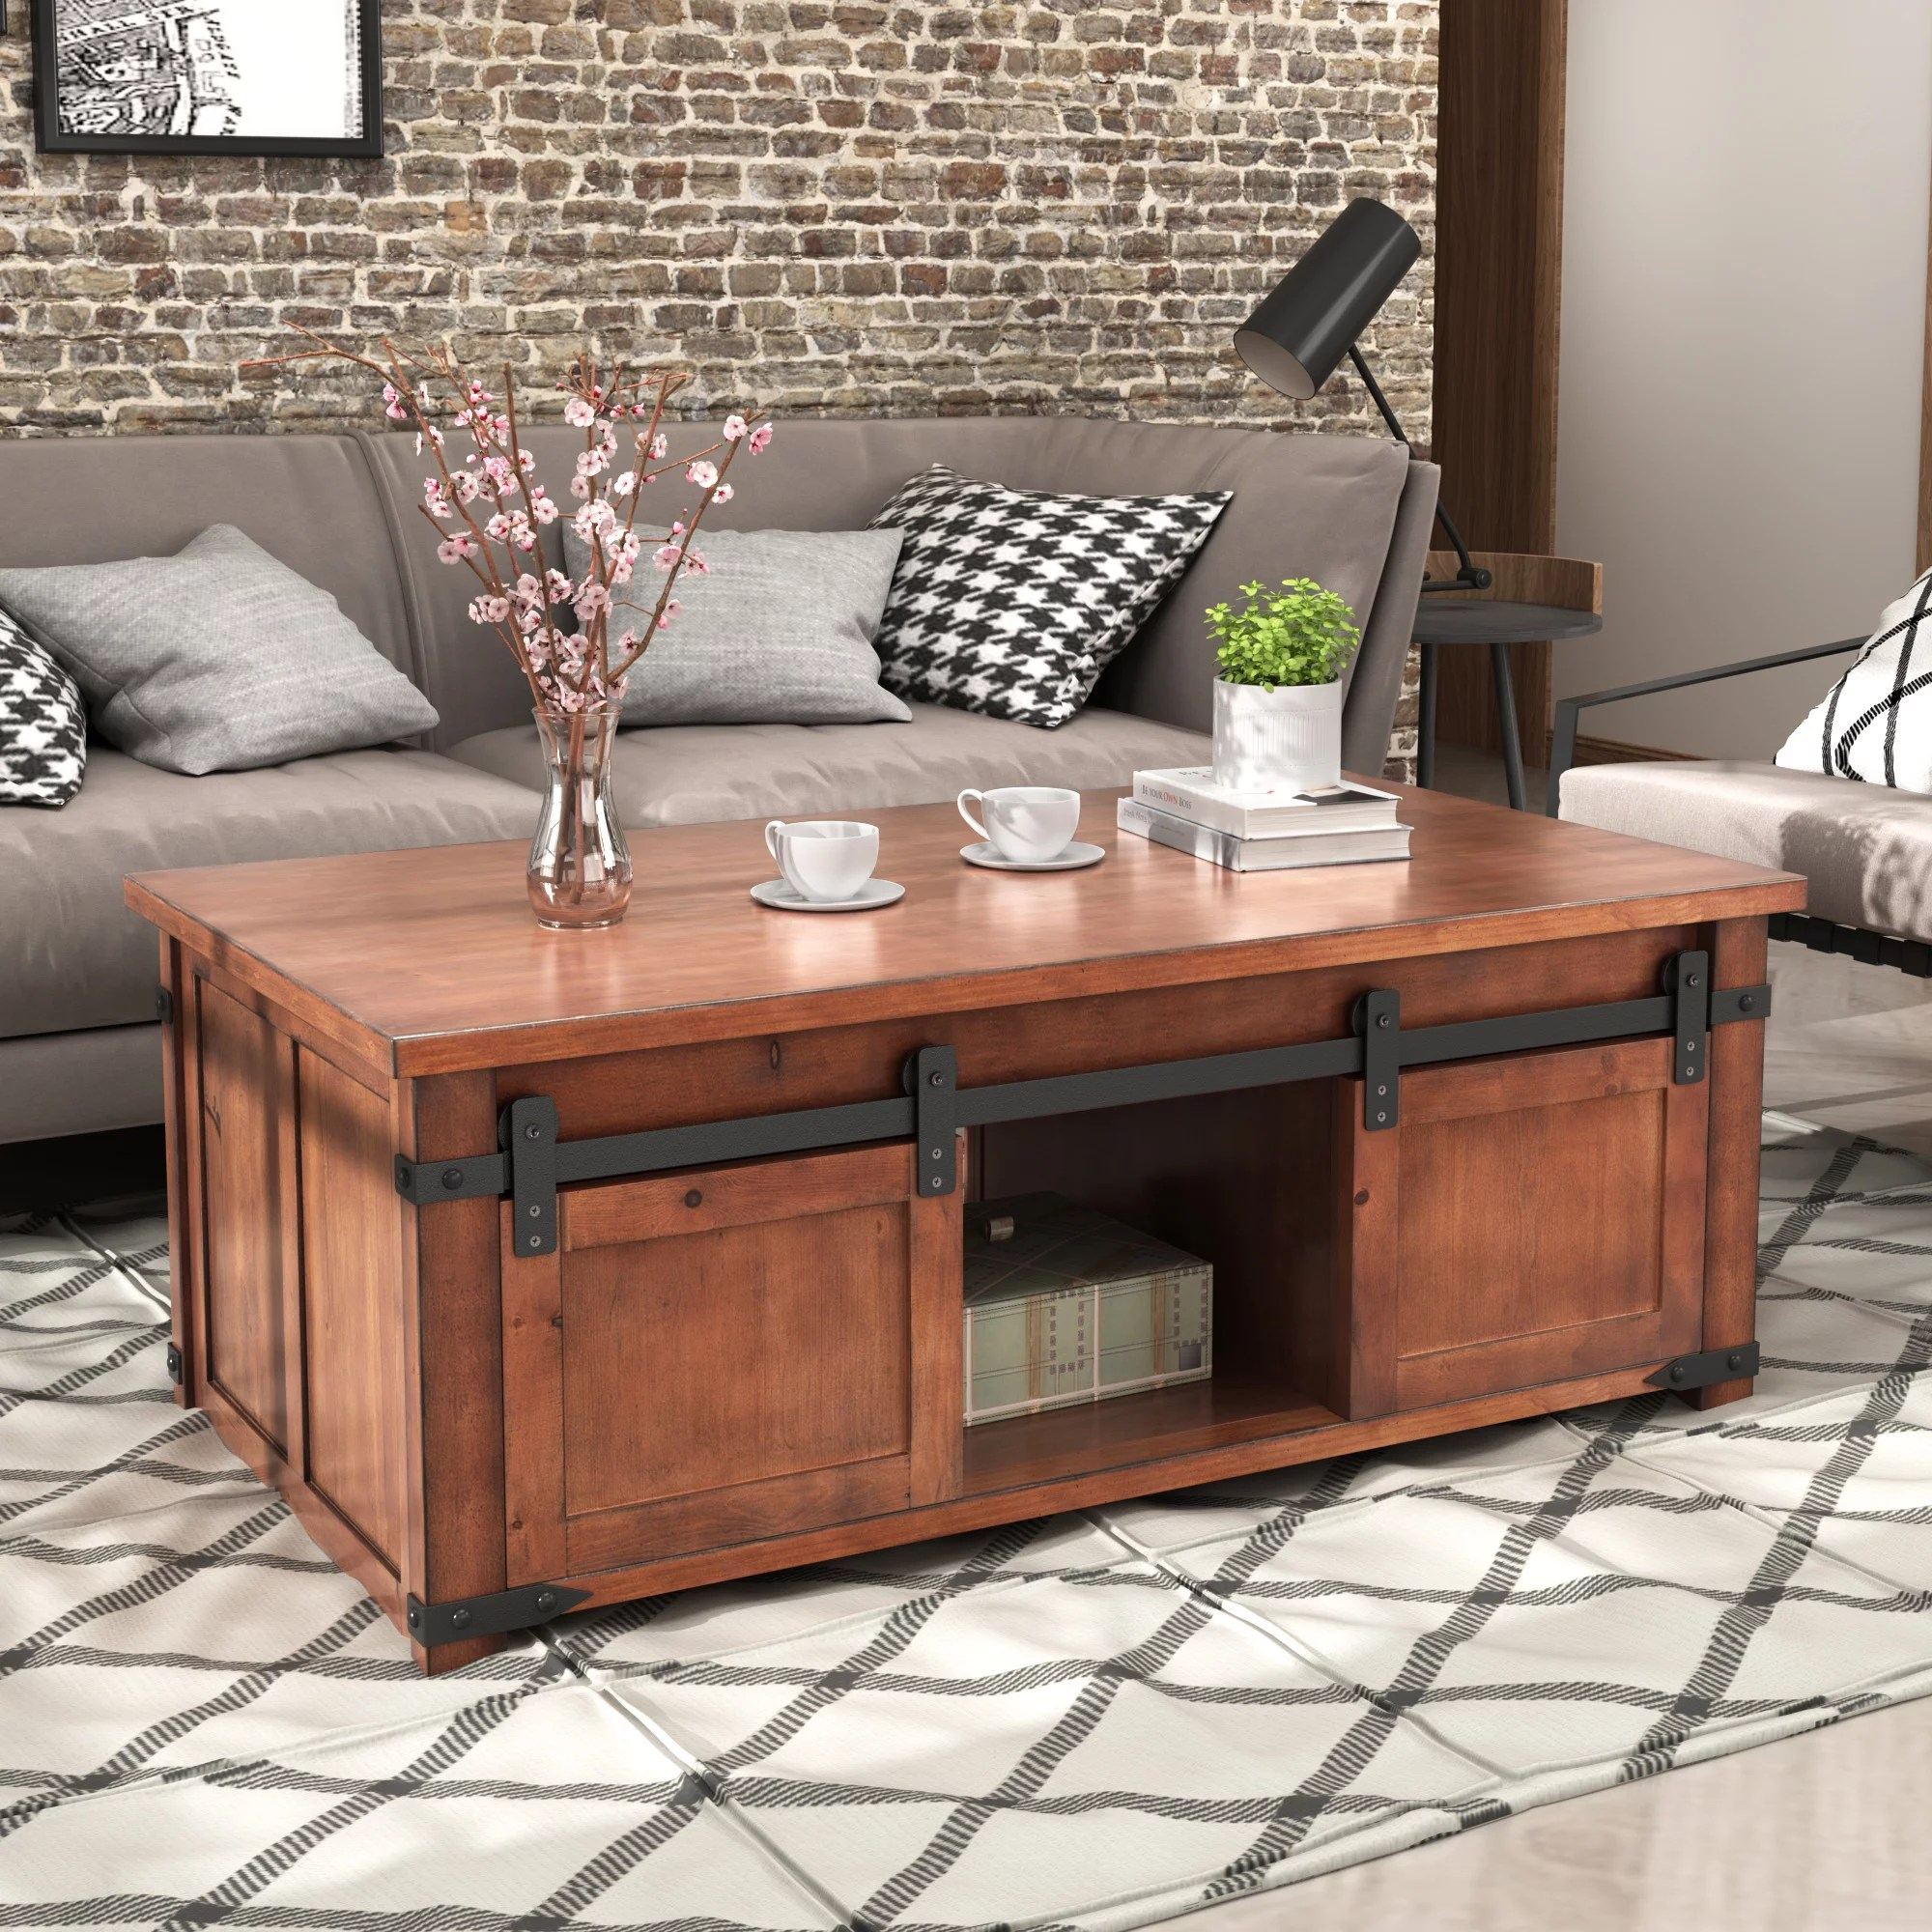 rectangular coffee table tv stand farmhouse coffee table with storage shelf and sliding doors cabinets rustic wooden coffee table end table living